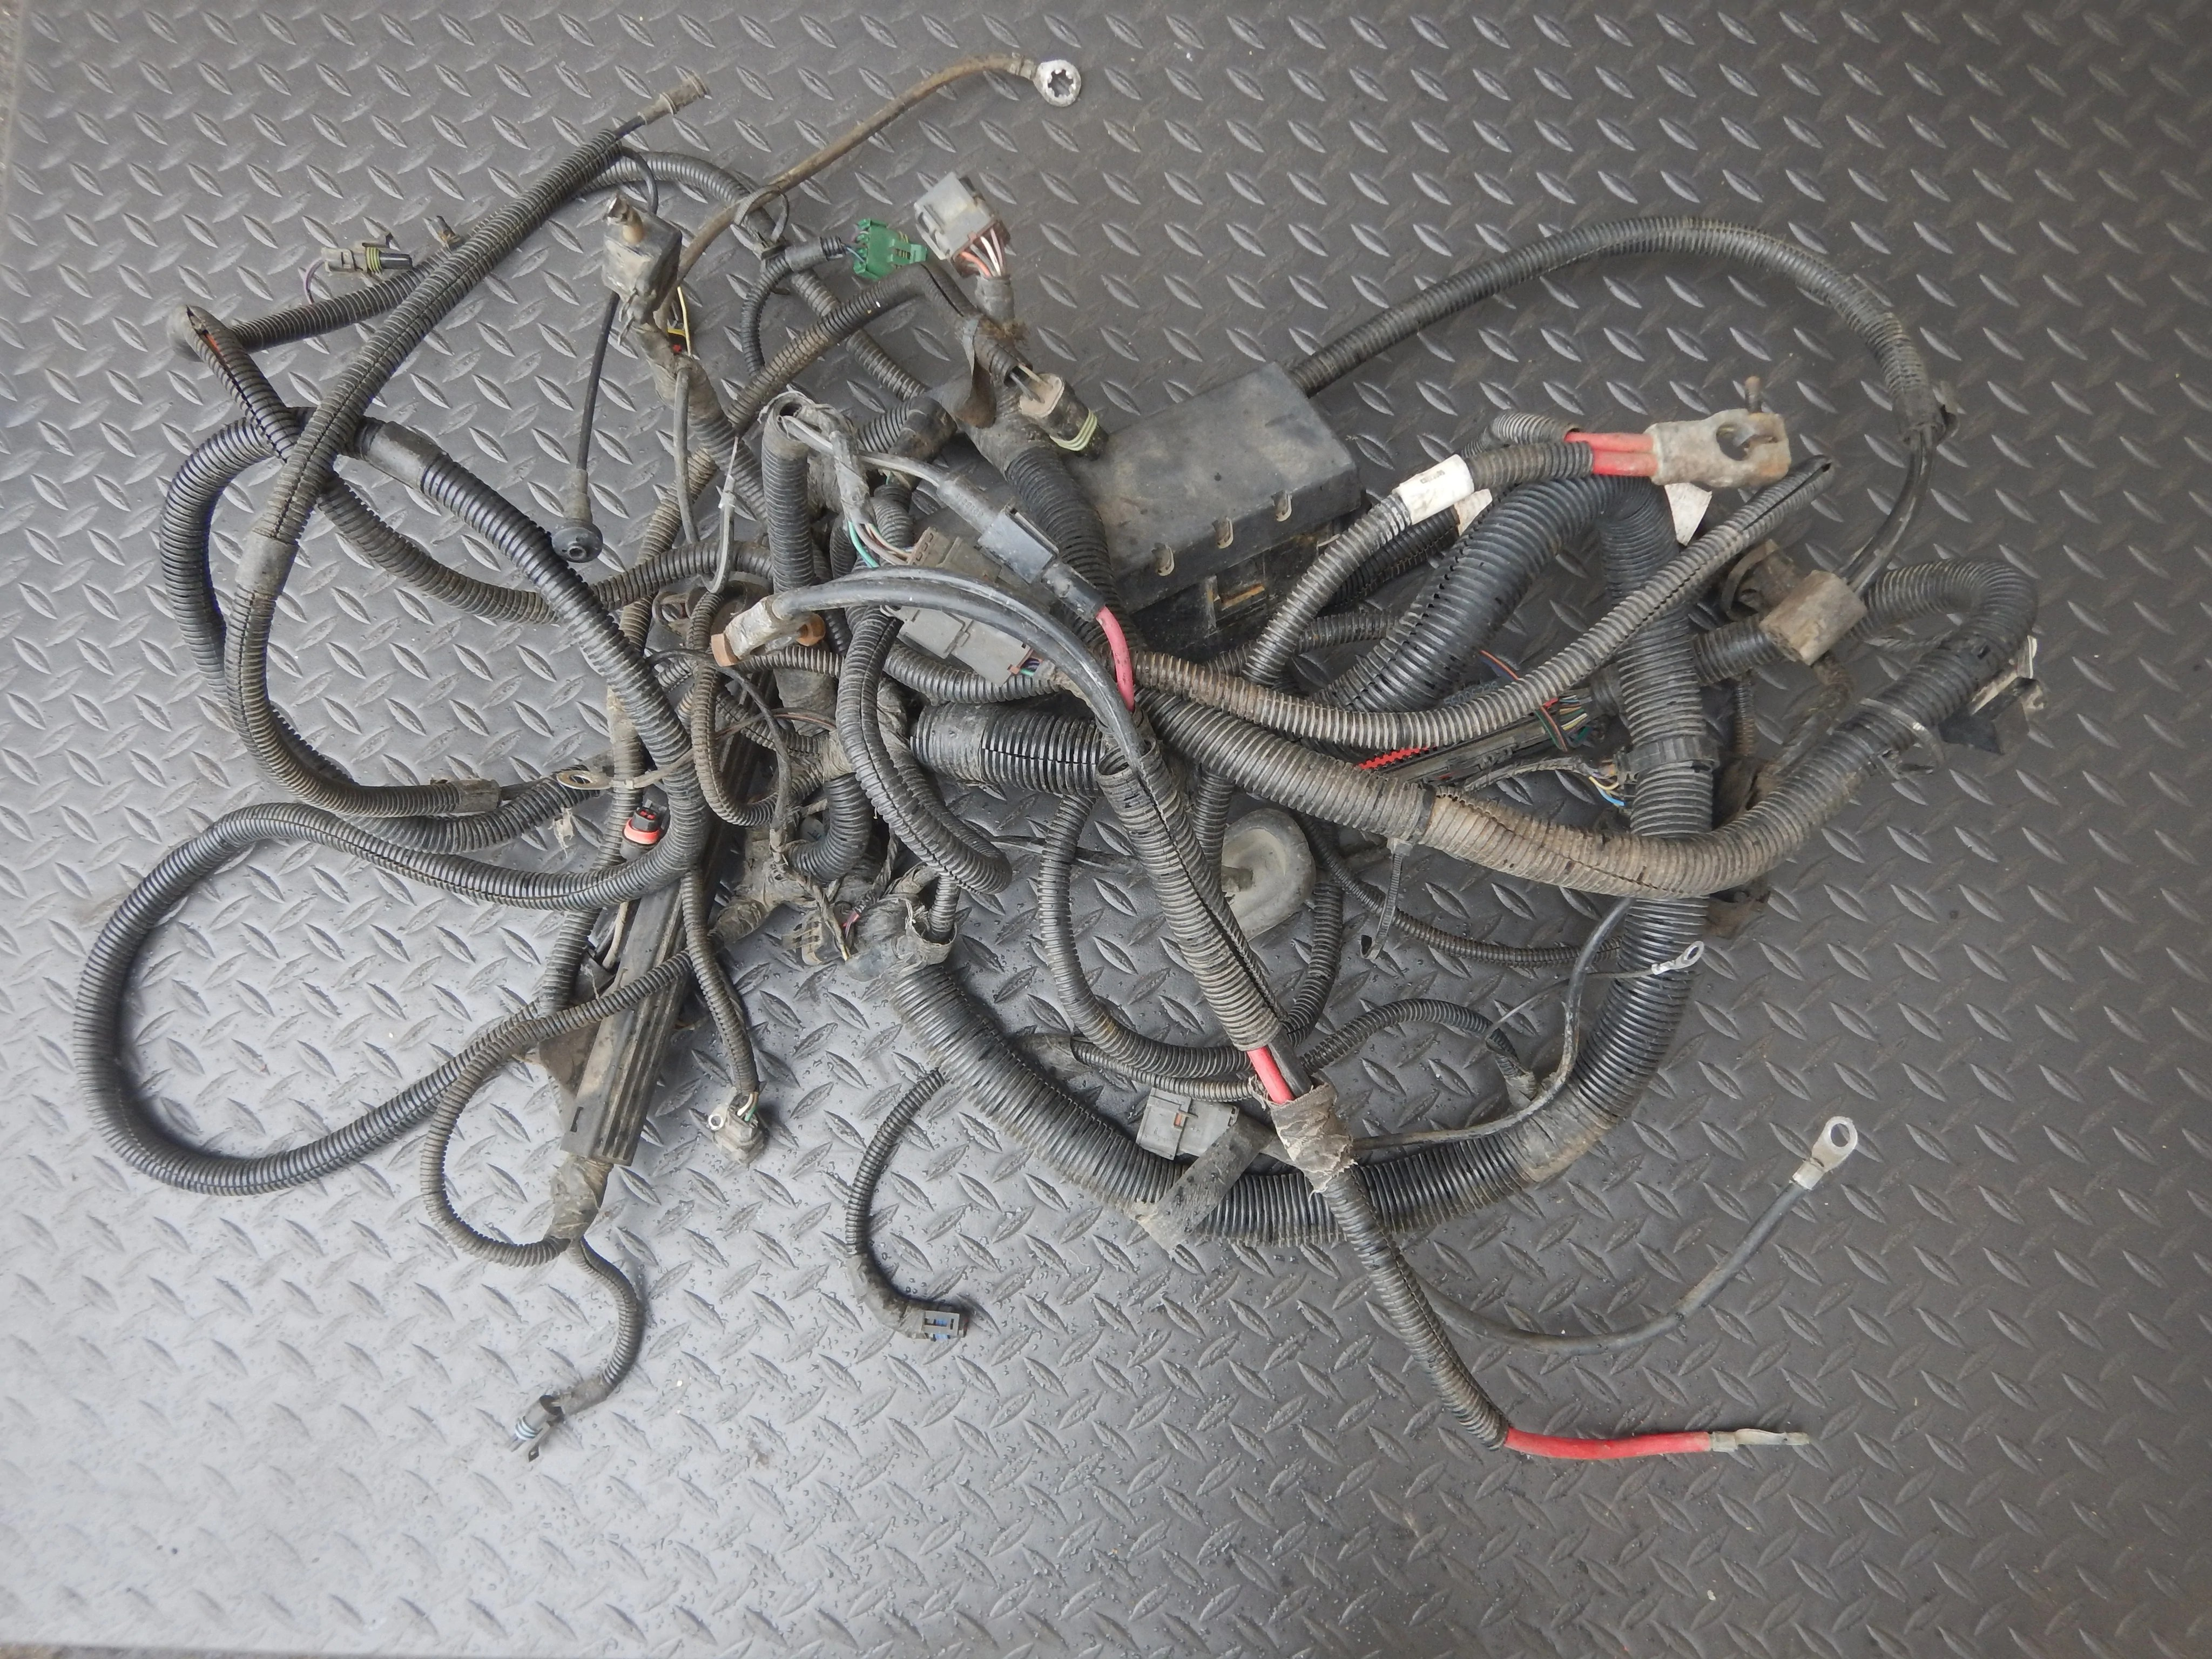 hight resolution of 92 95 wrangler yj 2 5 4cyl engine wire harness mpi best deals on rh deadjeep com 1995 jeep wrangler wiring harness 95 jeep wrangler wiring harness